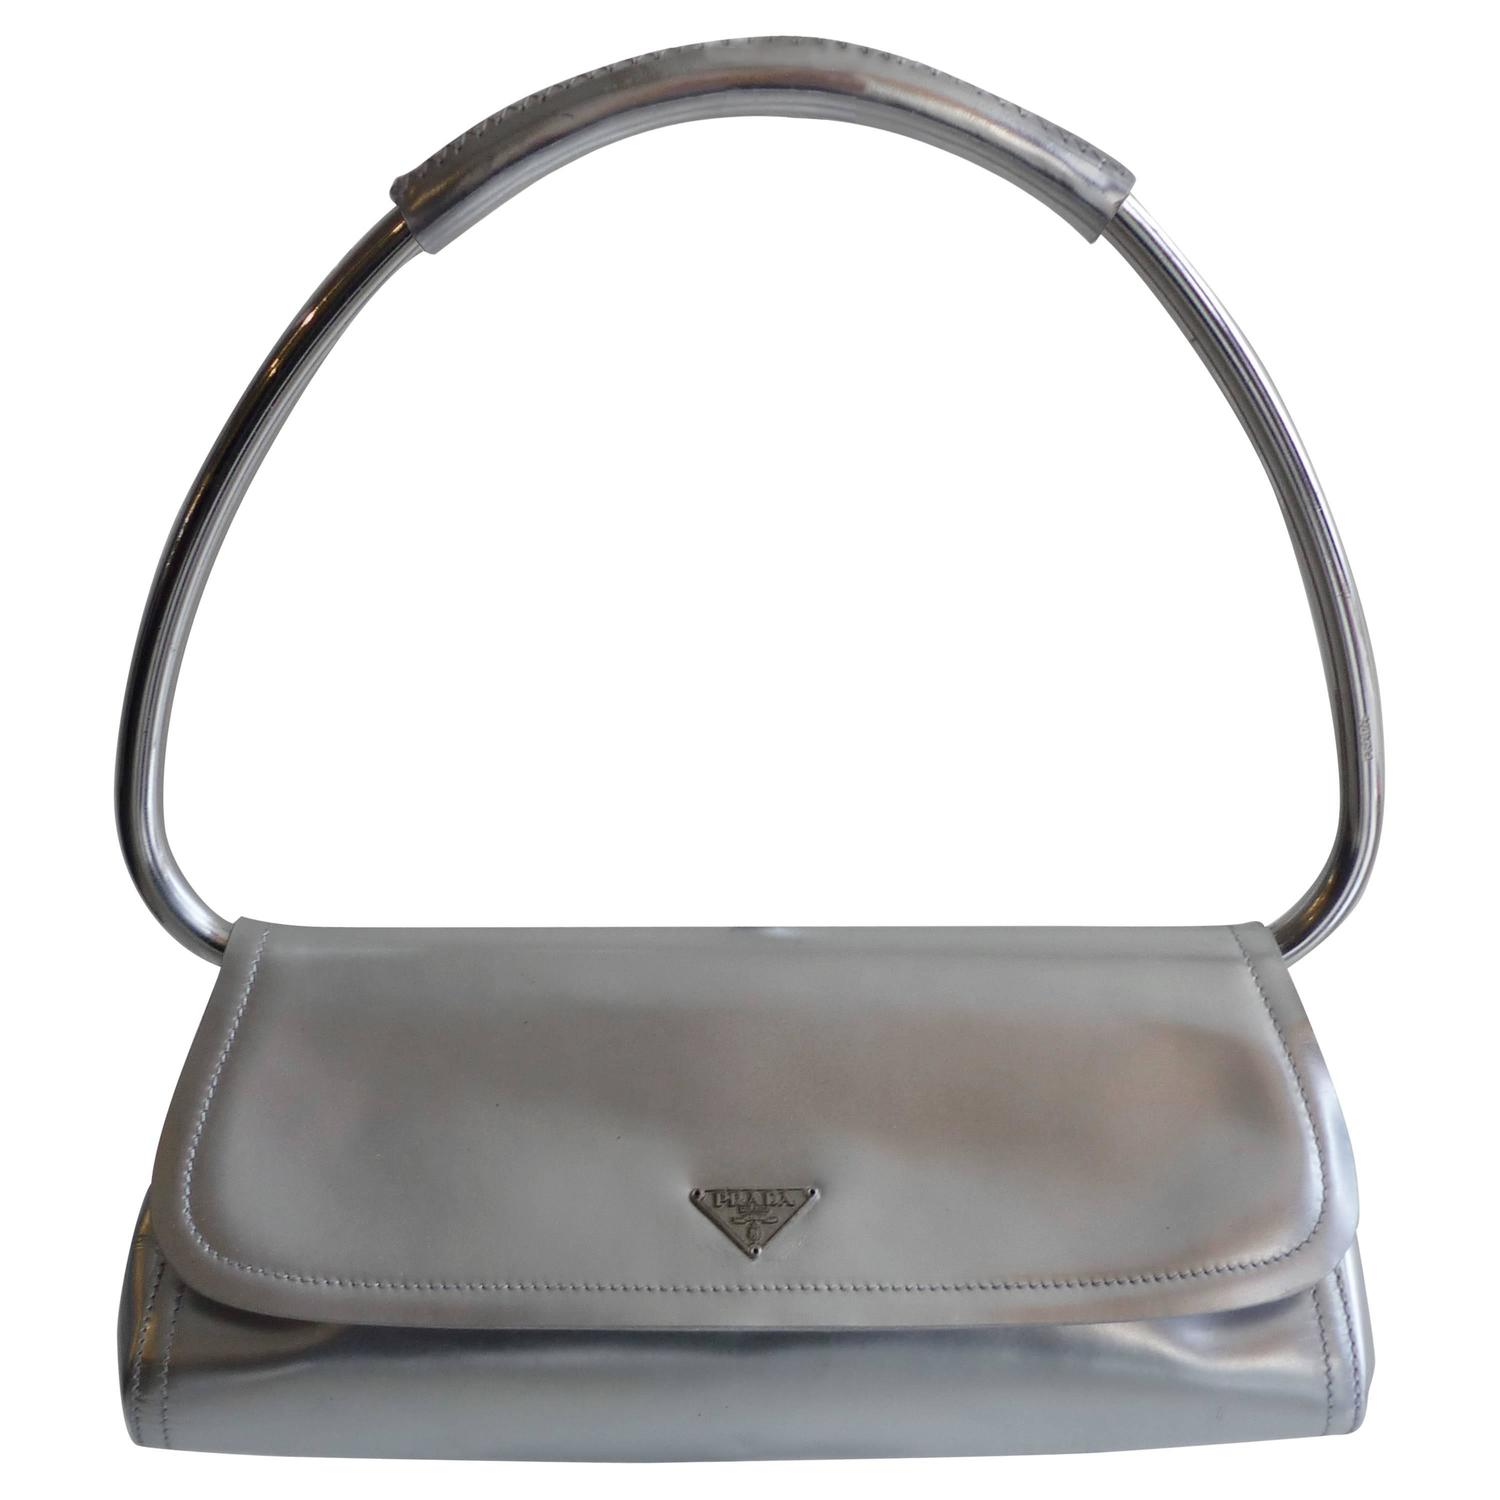 fdf32d4c0e22 prada silver ring handle bag. prada lime green ...